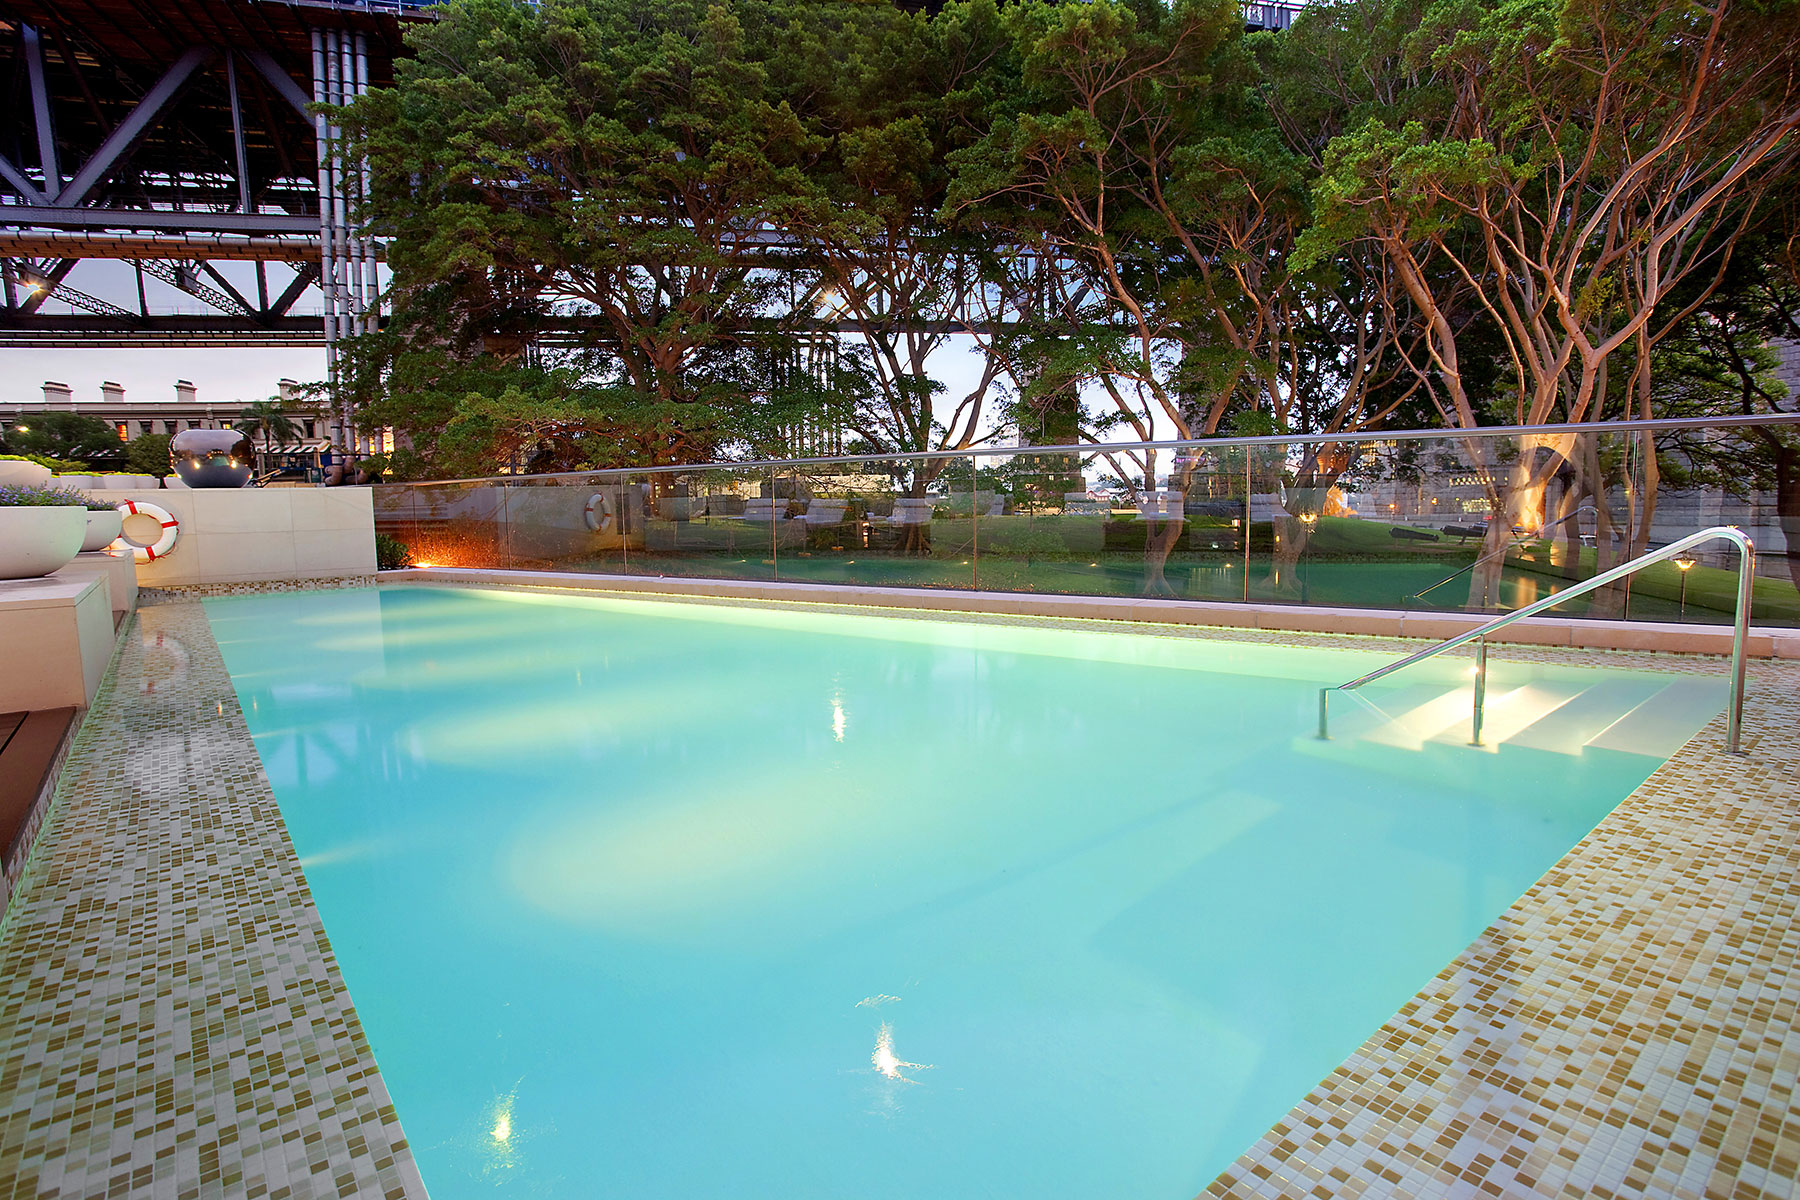 Commercial-Pool-Building-Project-6